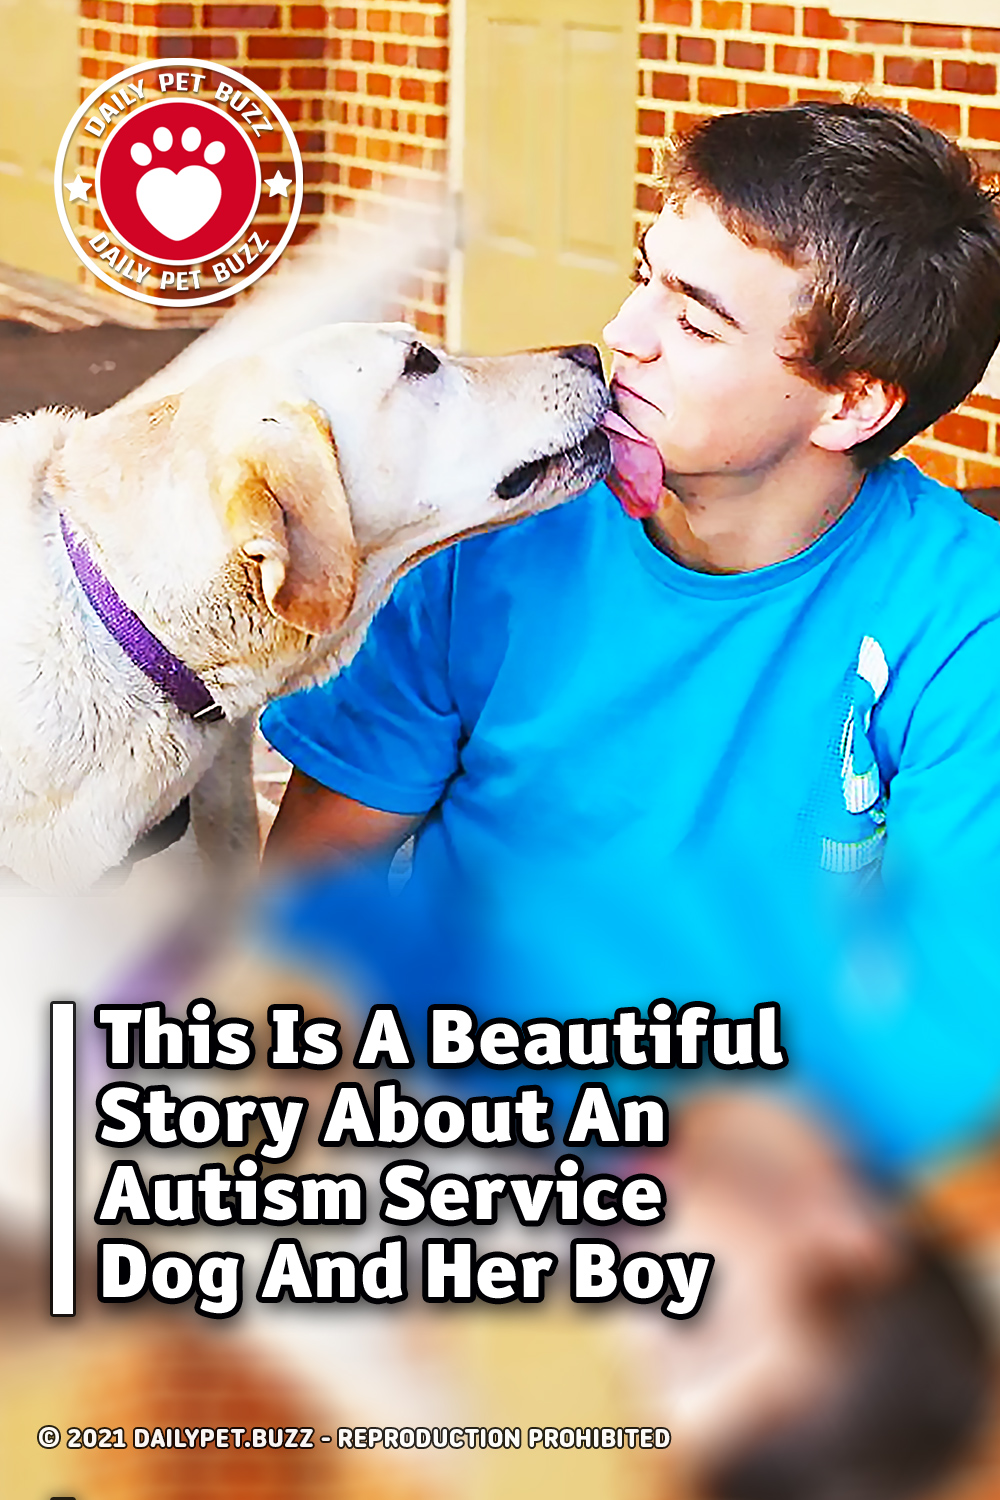 This Is A Beautiful Story About An Autism Service Dog And Her Boy